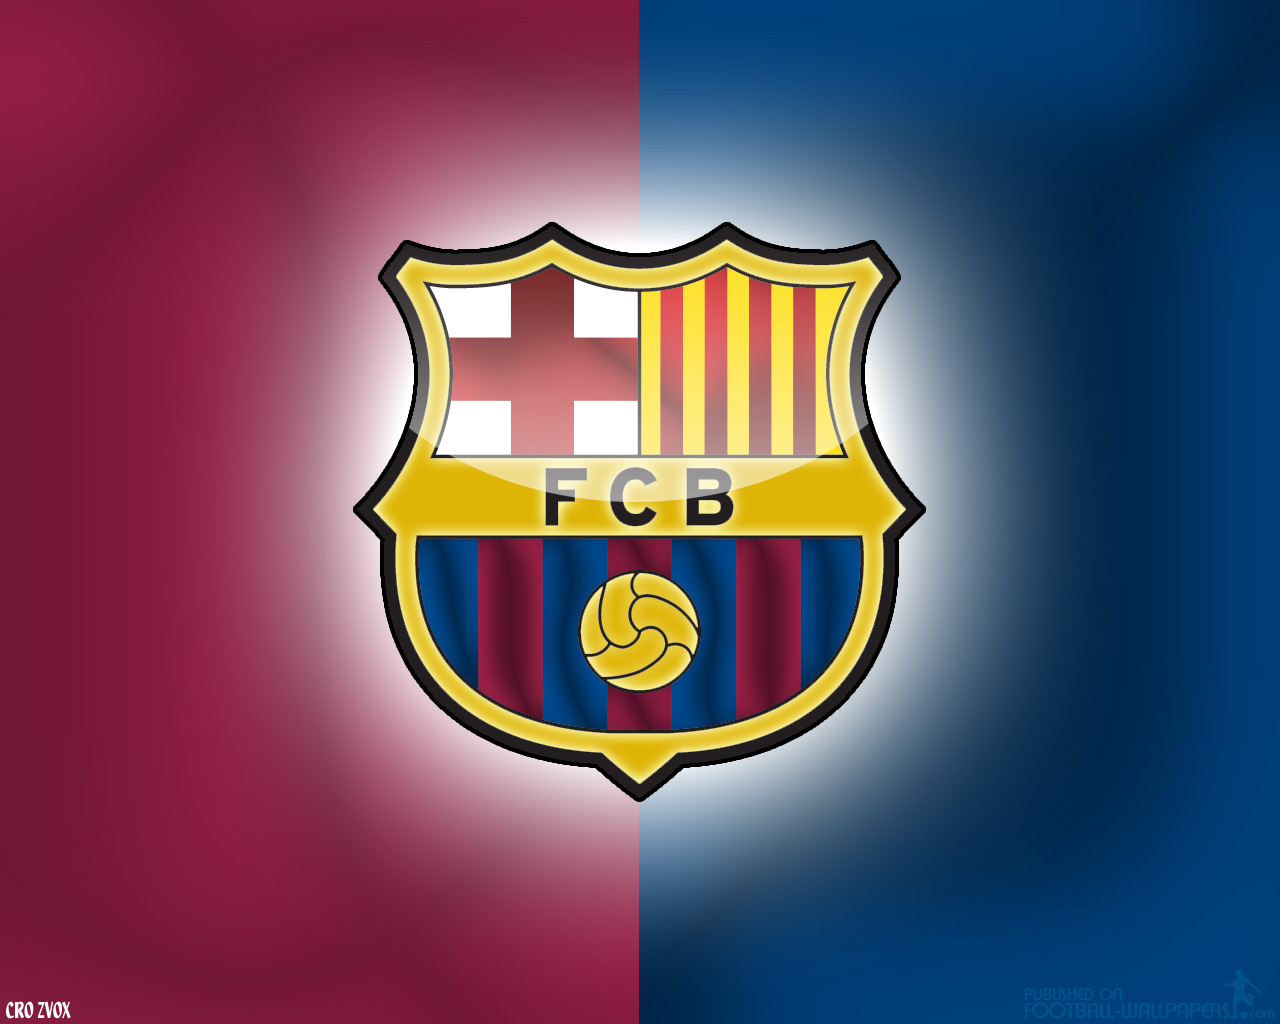 fc barcelona wallpaper wallpapercrazy 1280x1024